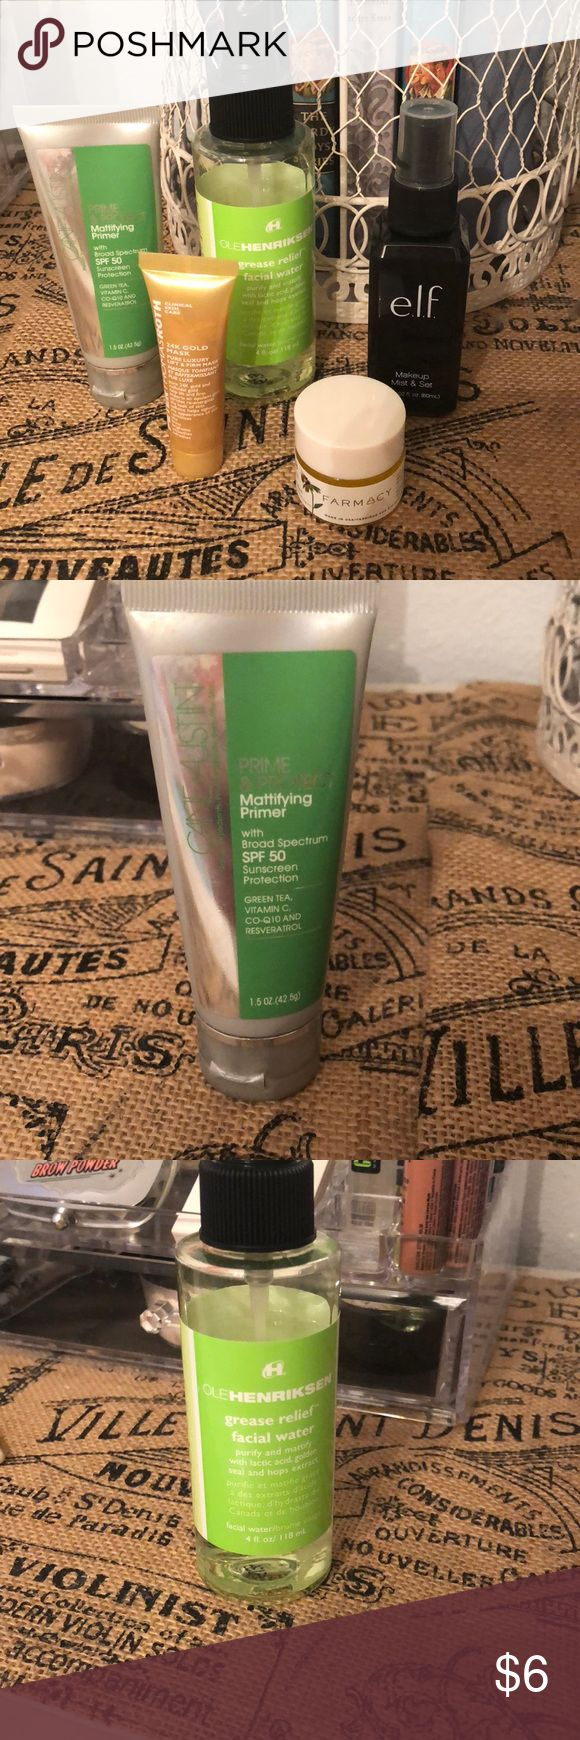 Bundle E.l.f make up mist and set.  PeterThomasRoth 24k gold mask  Came+Austin prime and protect Farmacy honey potion mask  Each item has been used but still has over 3/4 product left. Makeup Face Primer